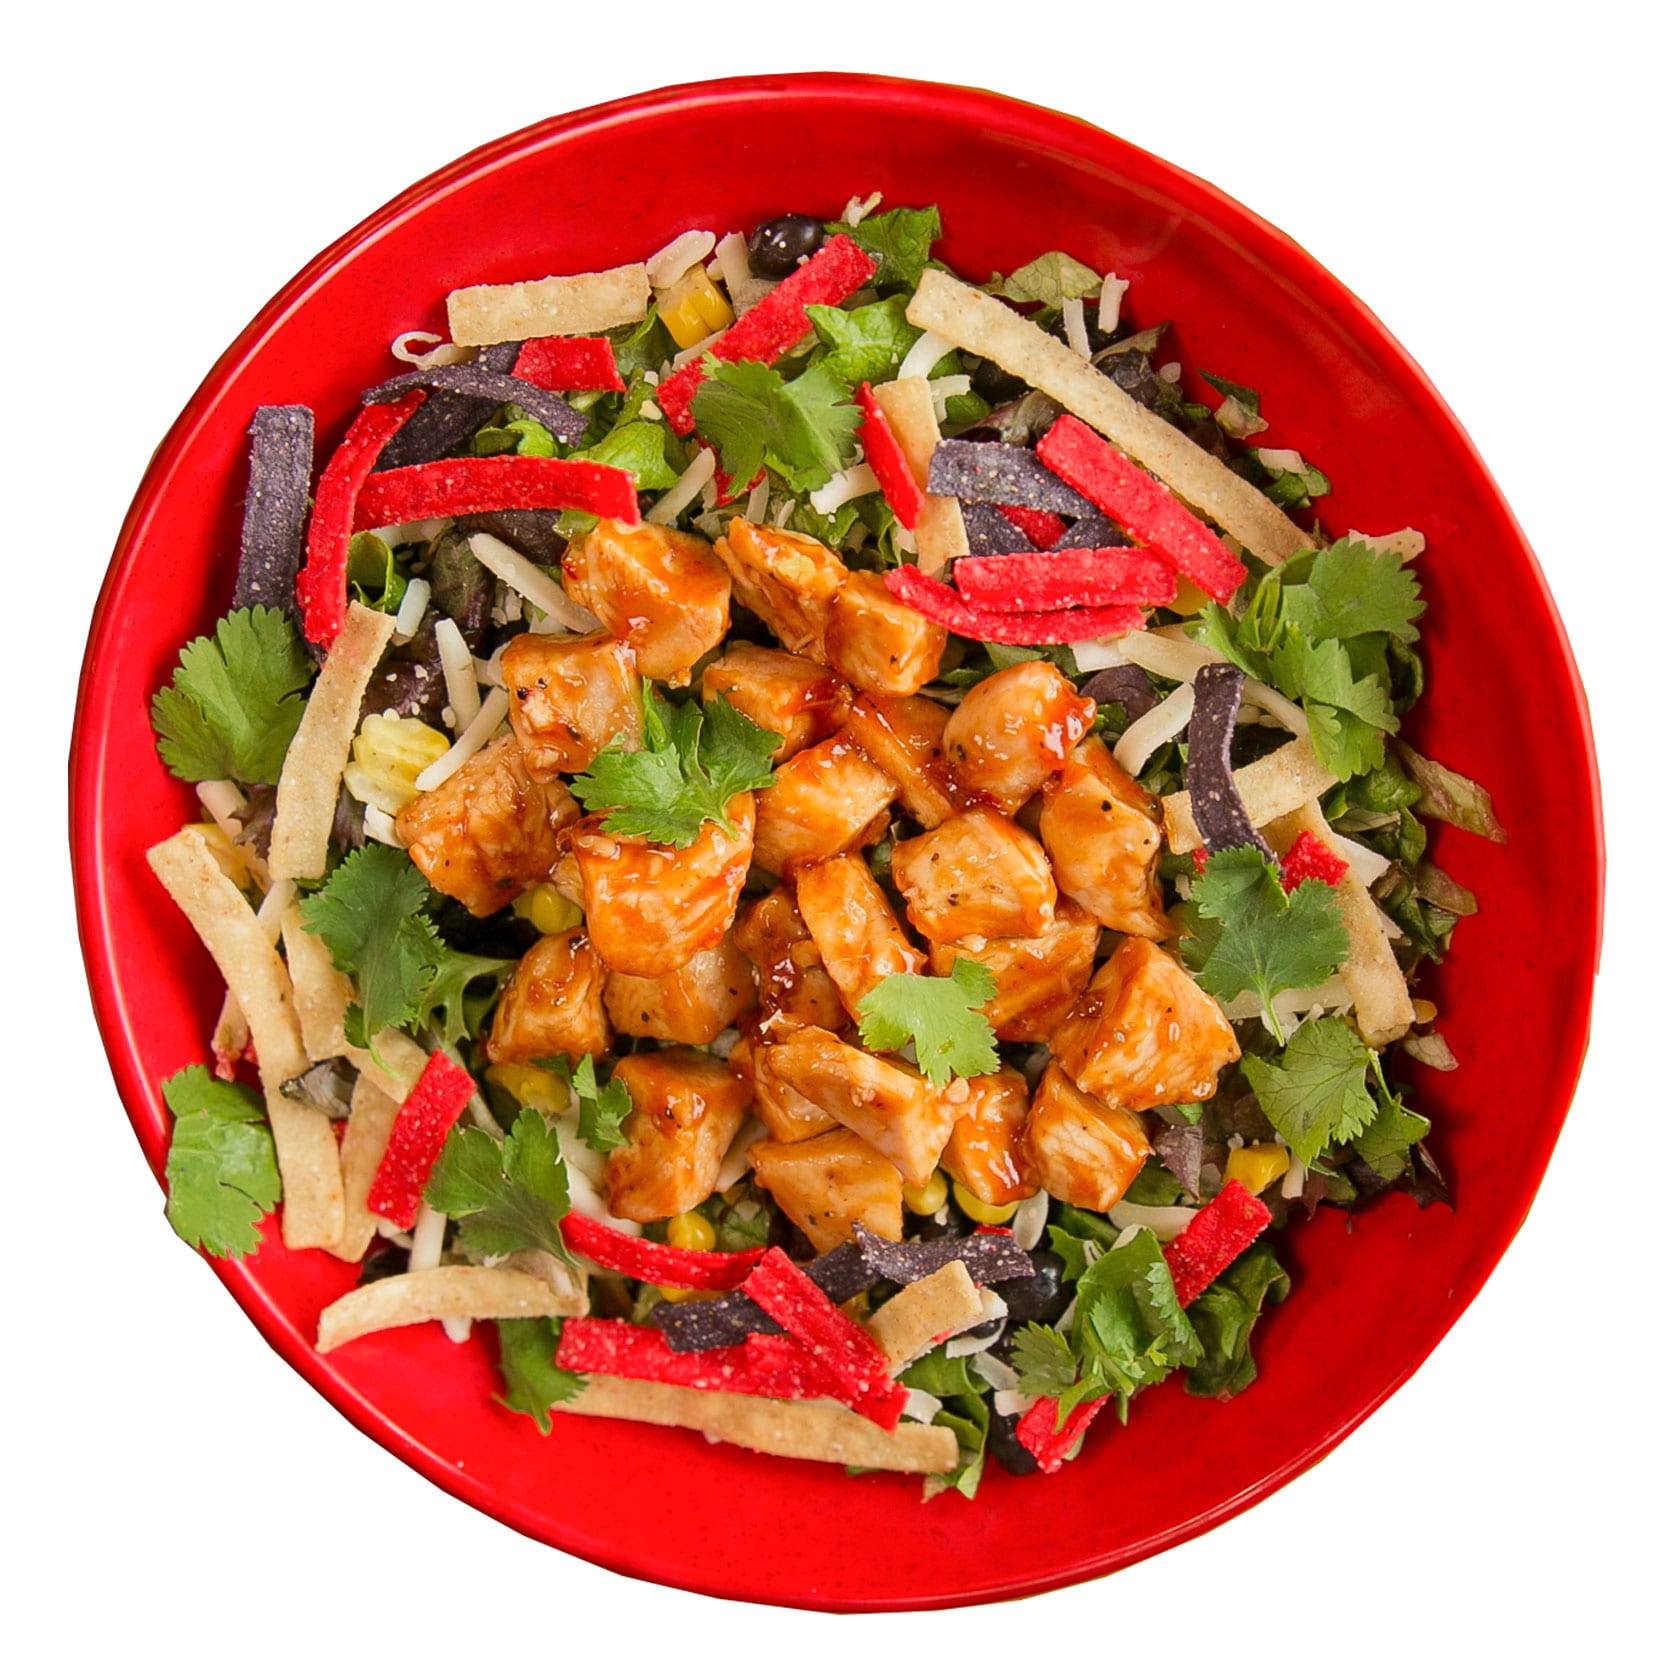 Crushed Red BBQ Chicken Urban Crafted Salad